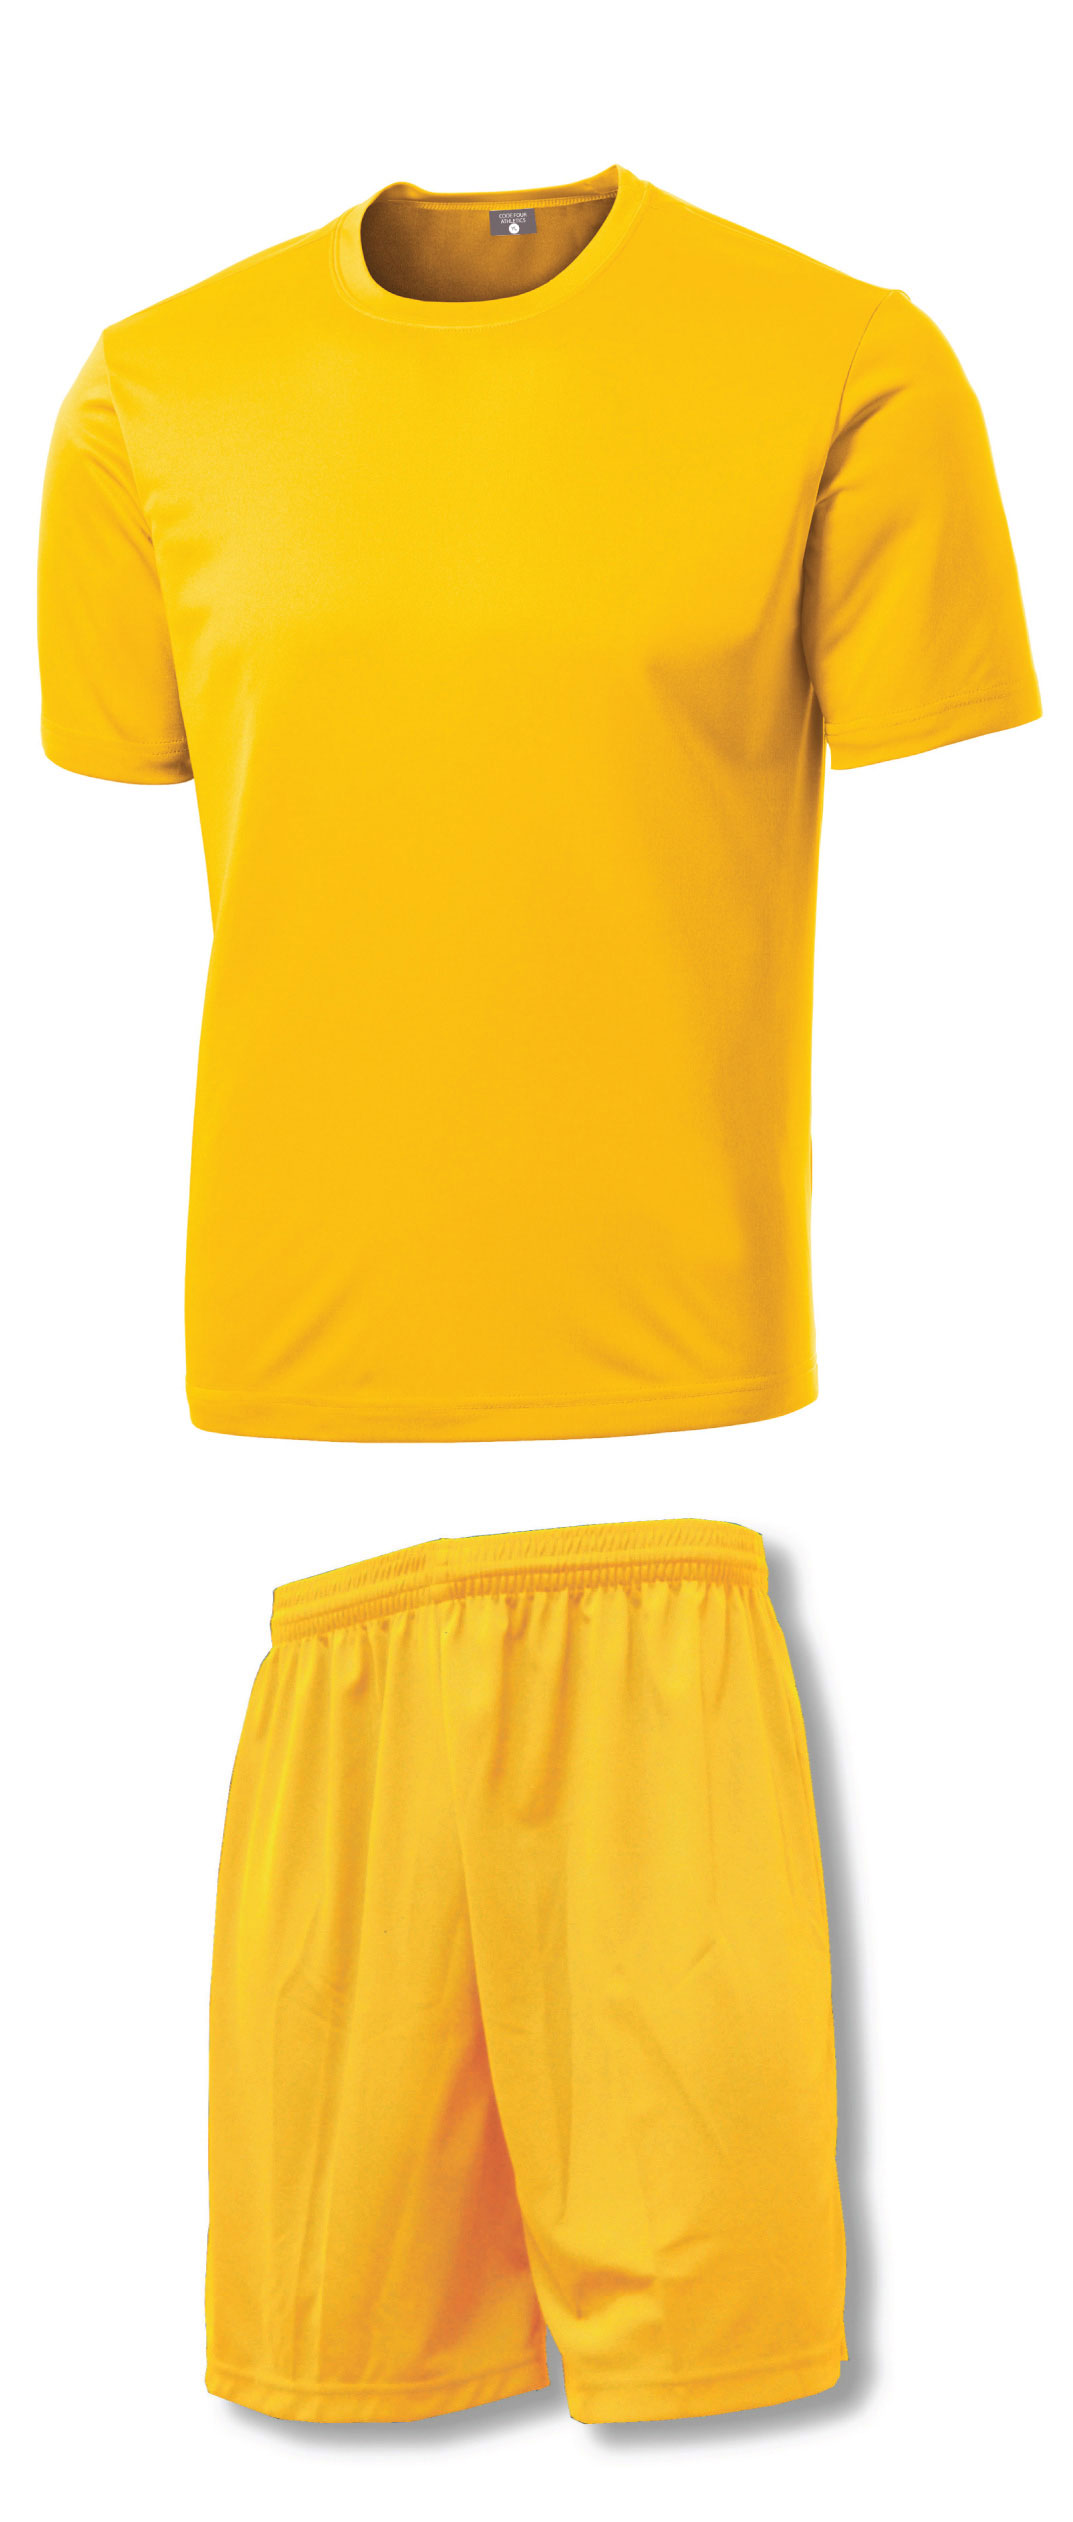 Soccer Training Uniform Kit by Code Four Athletics in gold